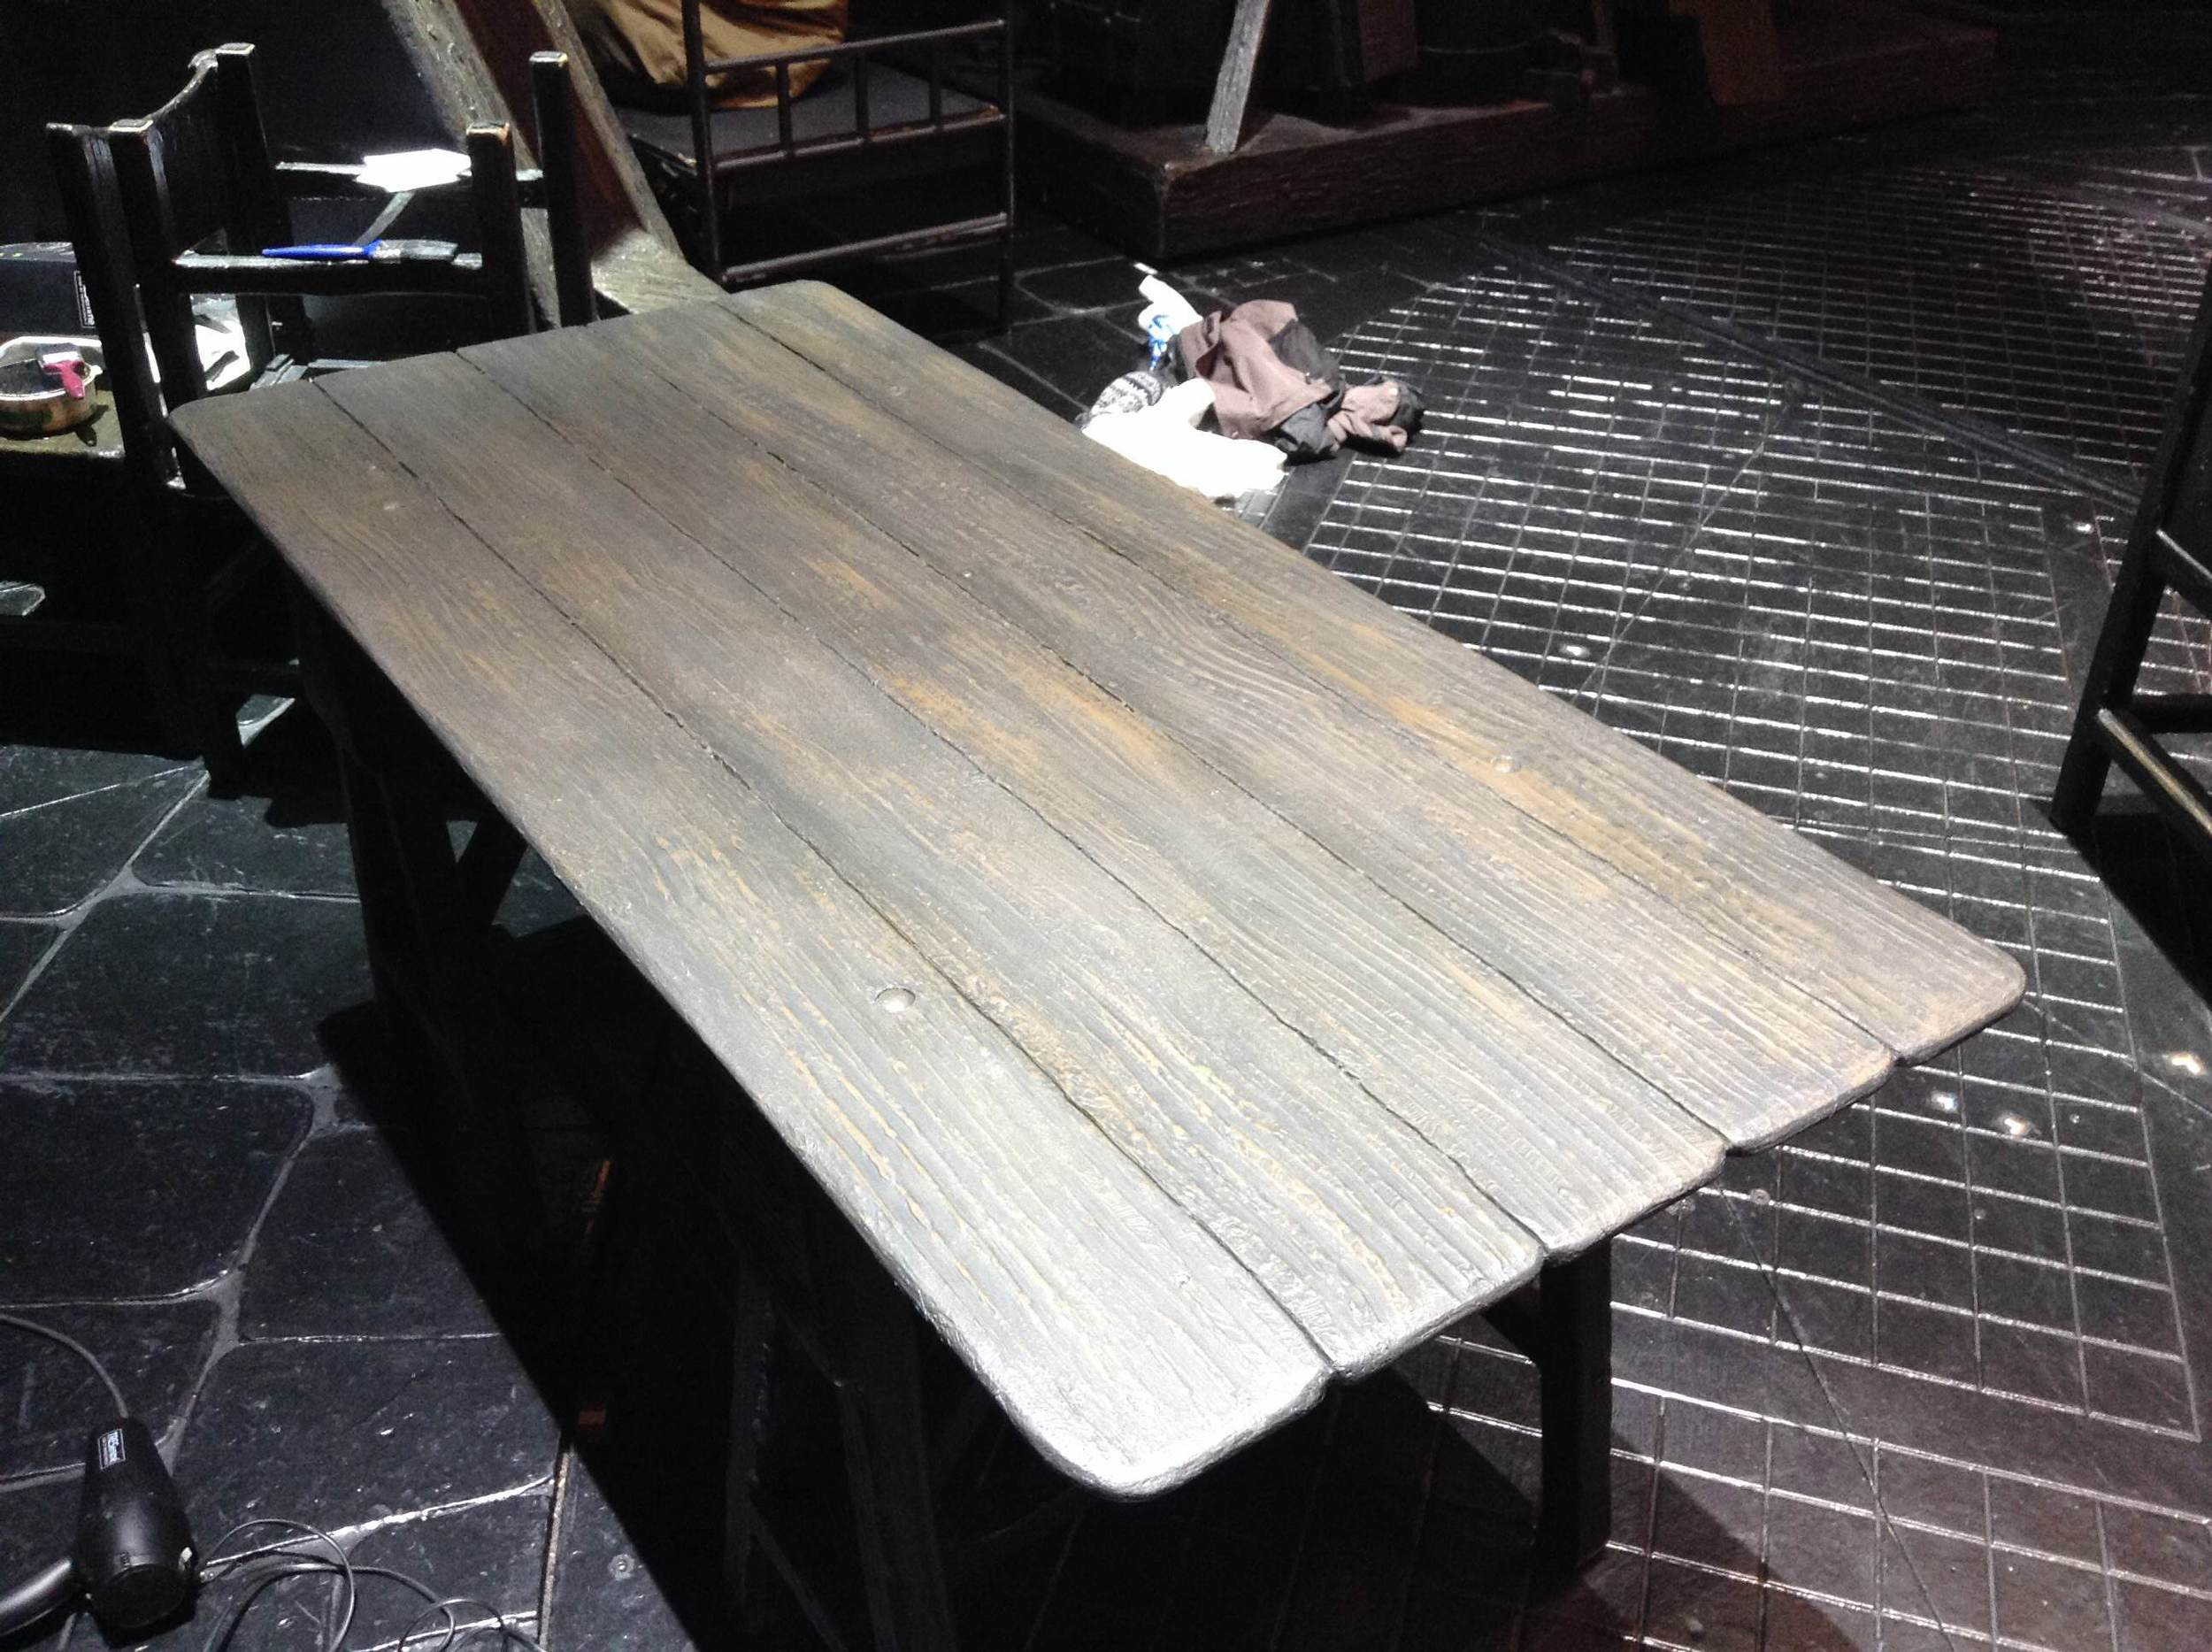 Table top repair - Les Mis